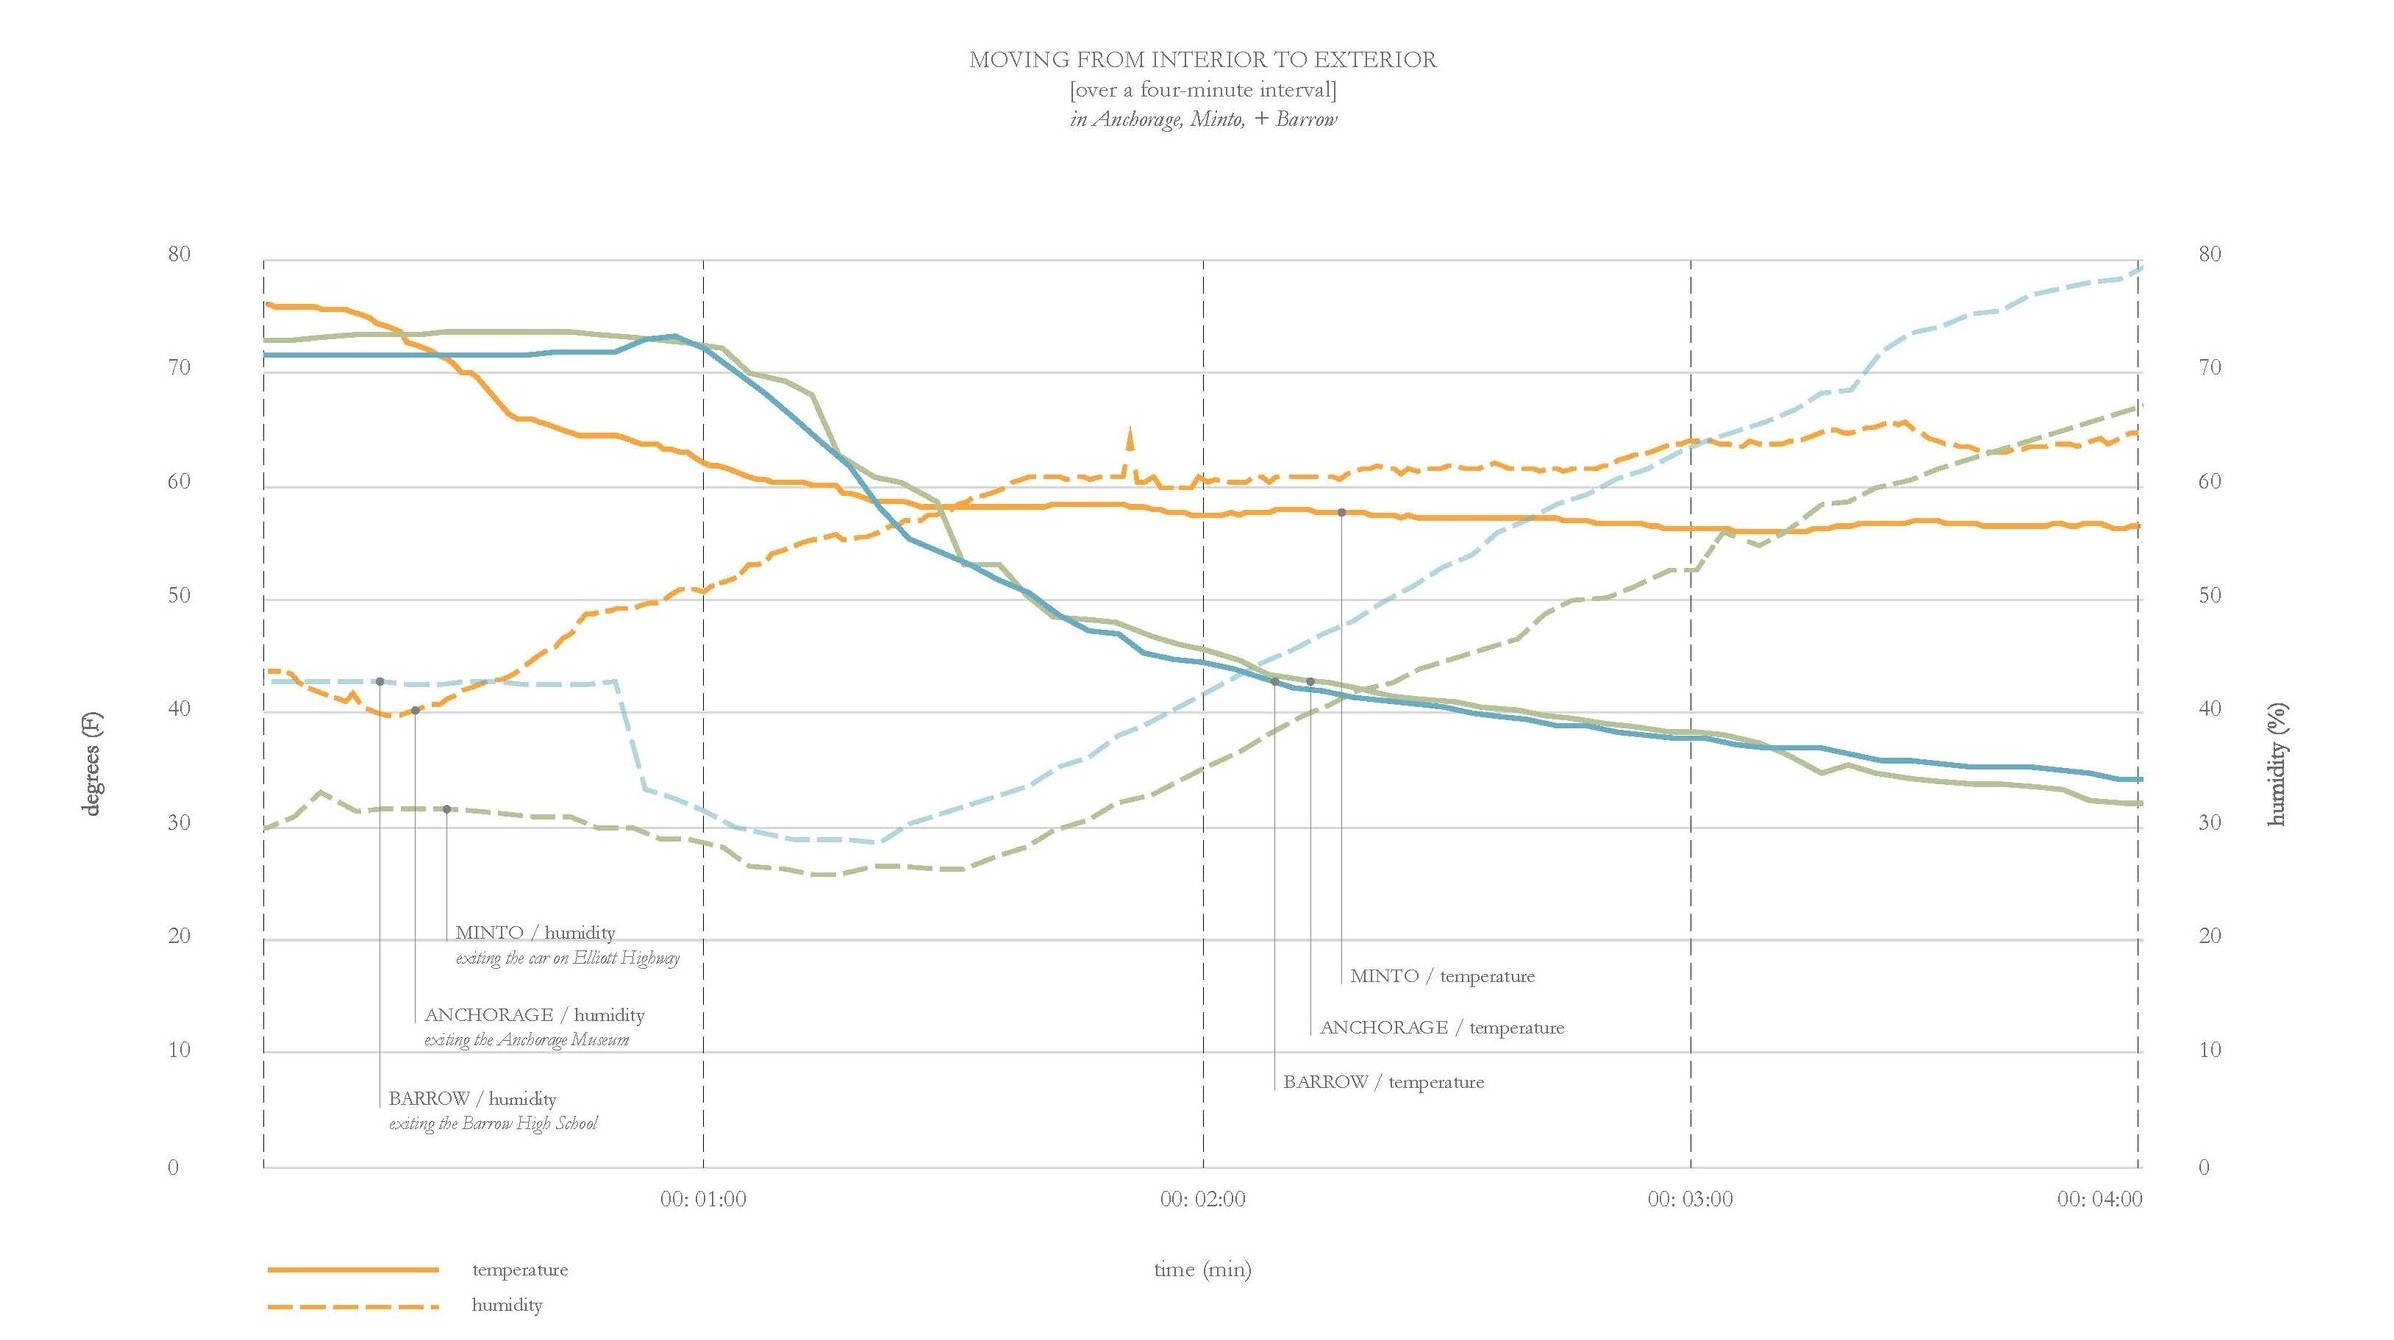 Temperature and humidity data collected using an Arduino while in three cities in Alaska, moving from interior spaces to exterior spaces. The graph shows the drastic change in climate over a four minute interval.